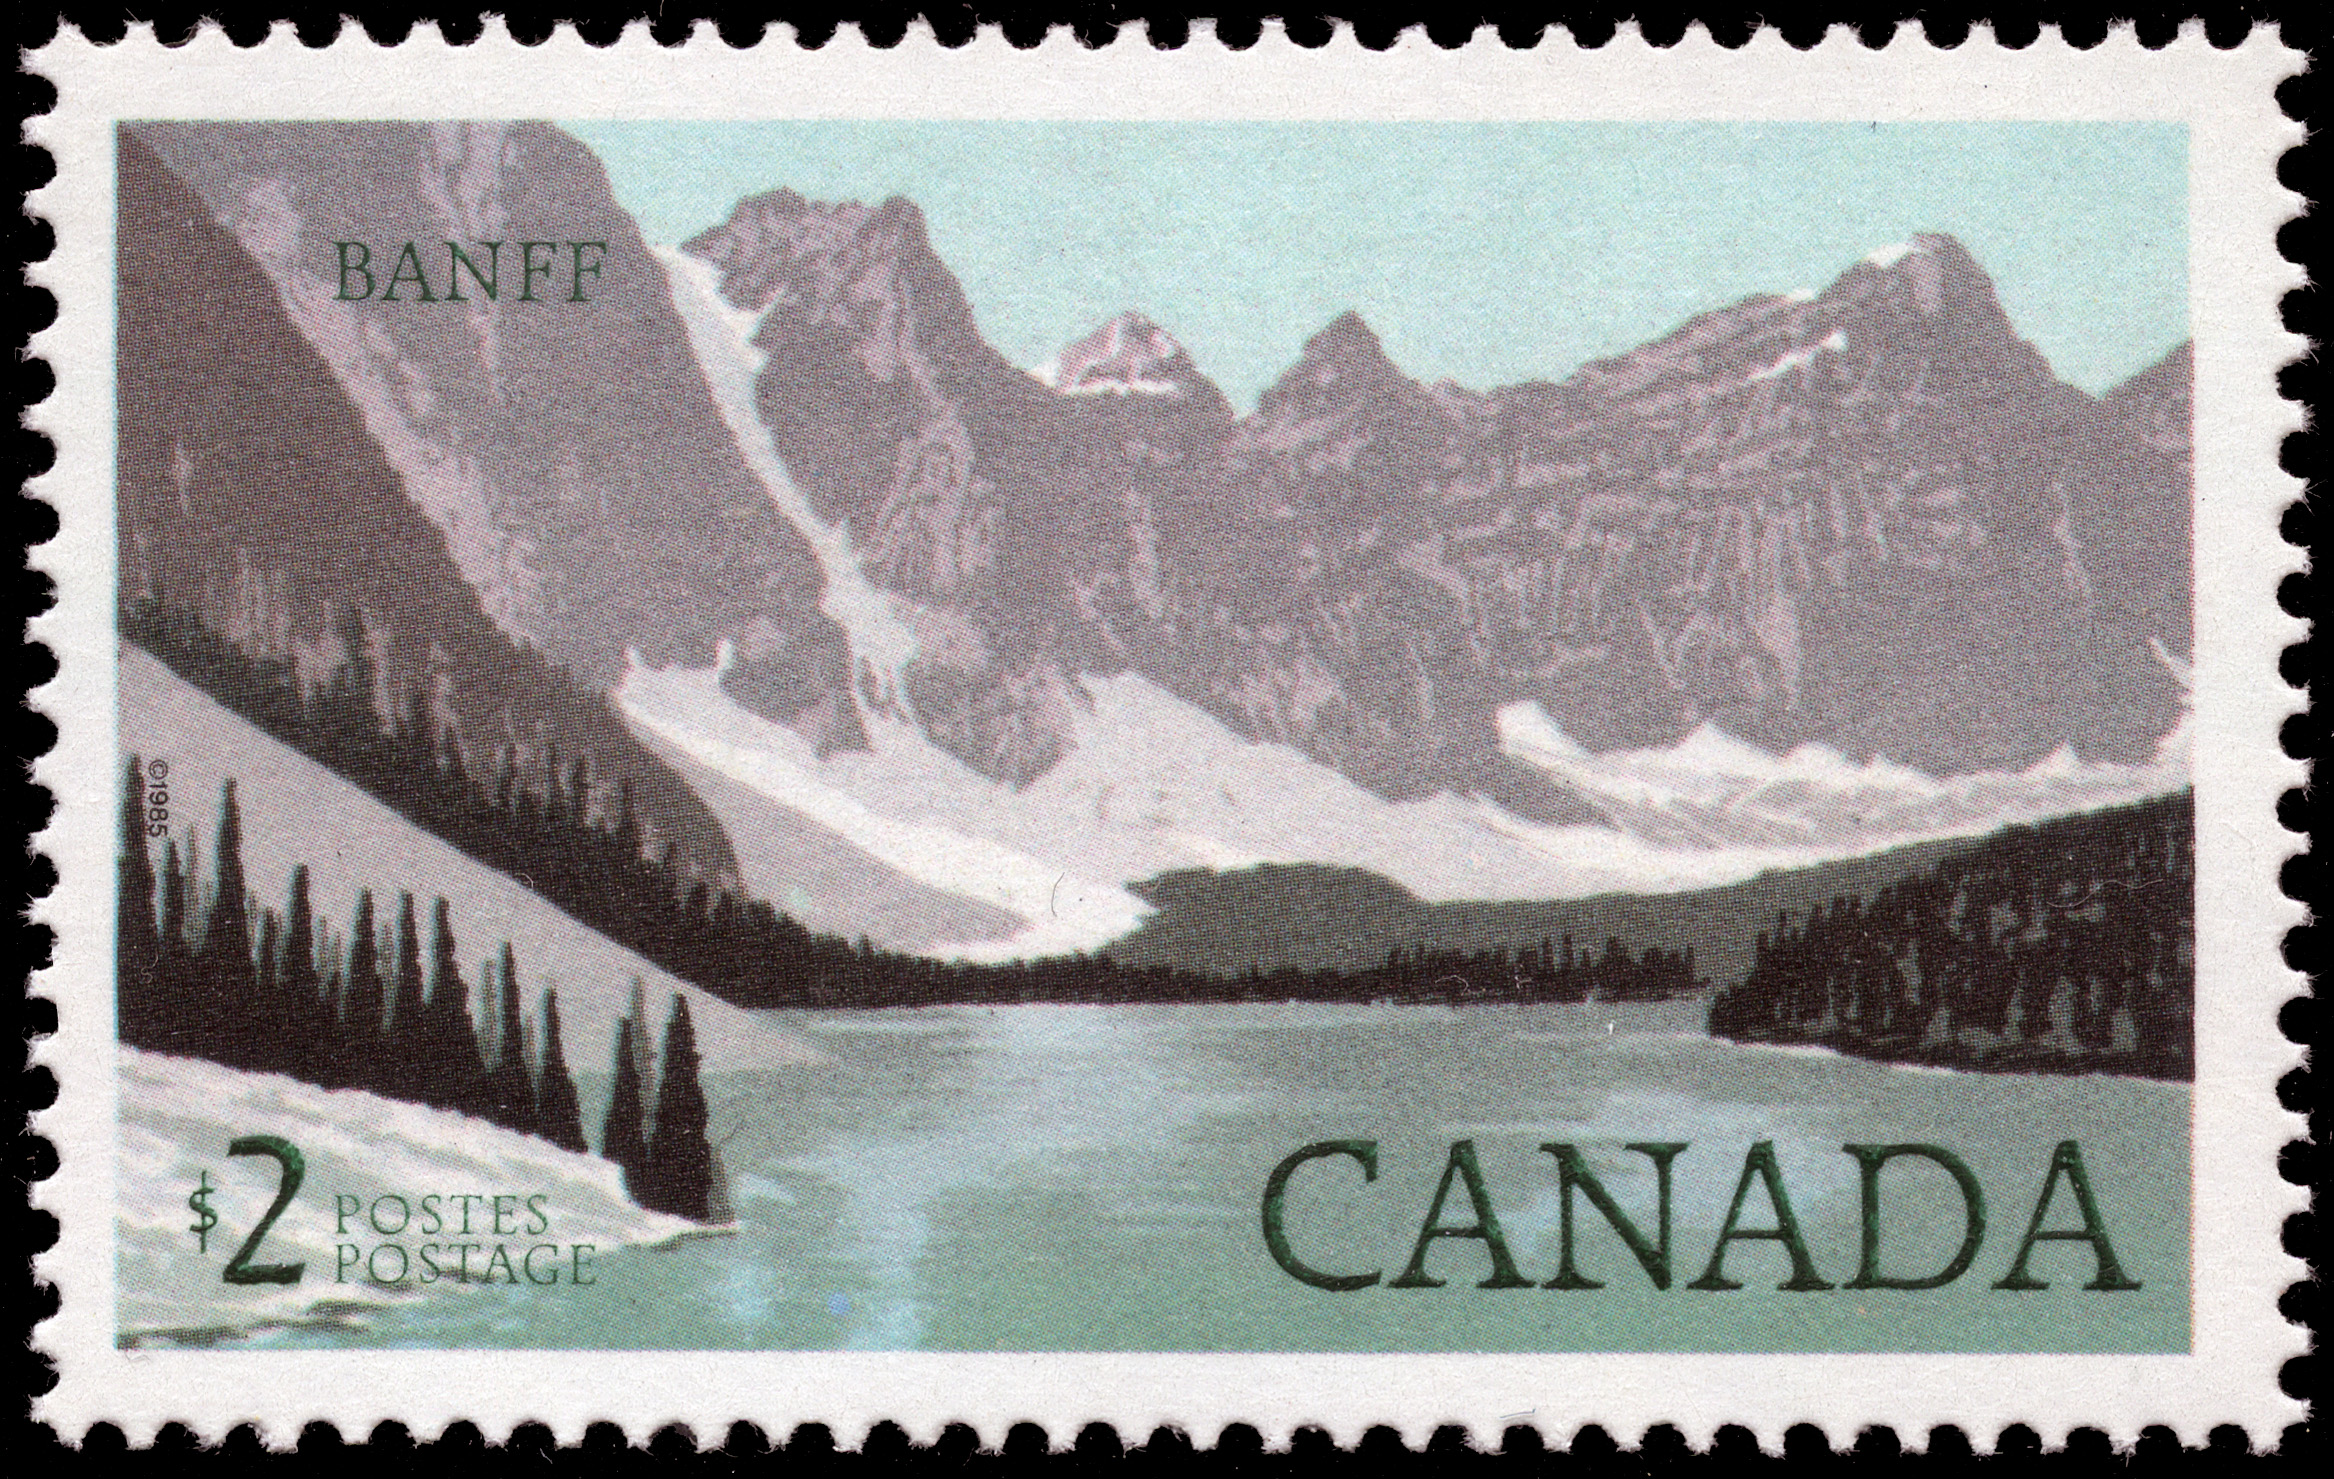 Banff Canada Postage Stamp